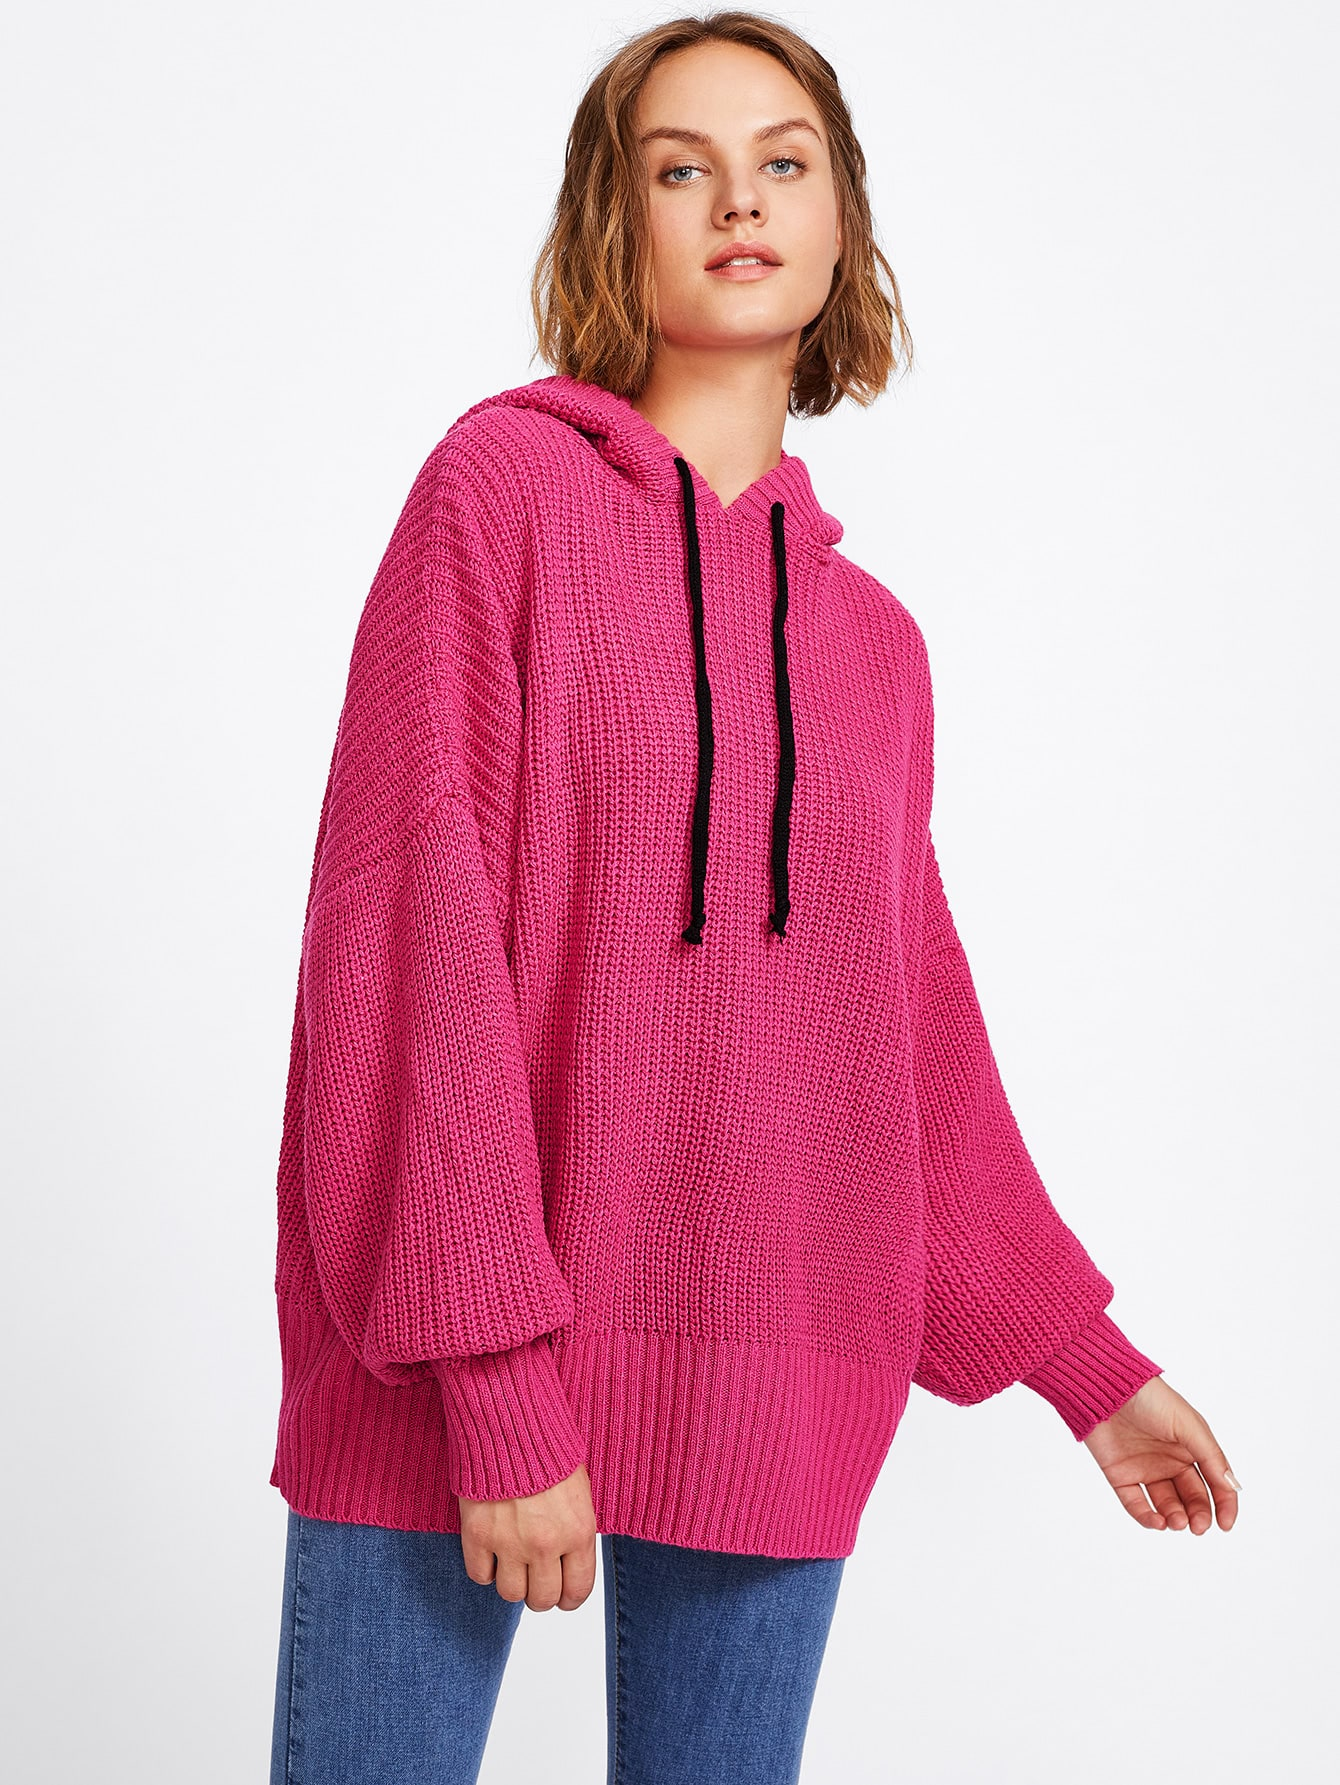 Knit this ladies oversized sweater, a design from the Rowan archive that is now available to purchase online. Designed by Martin Storey using the lovely dry oversized sweaters knitting patterns.